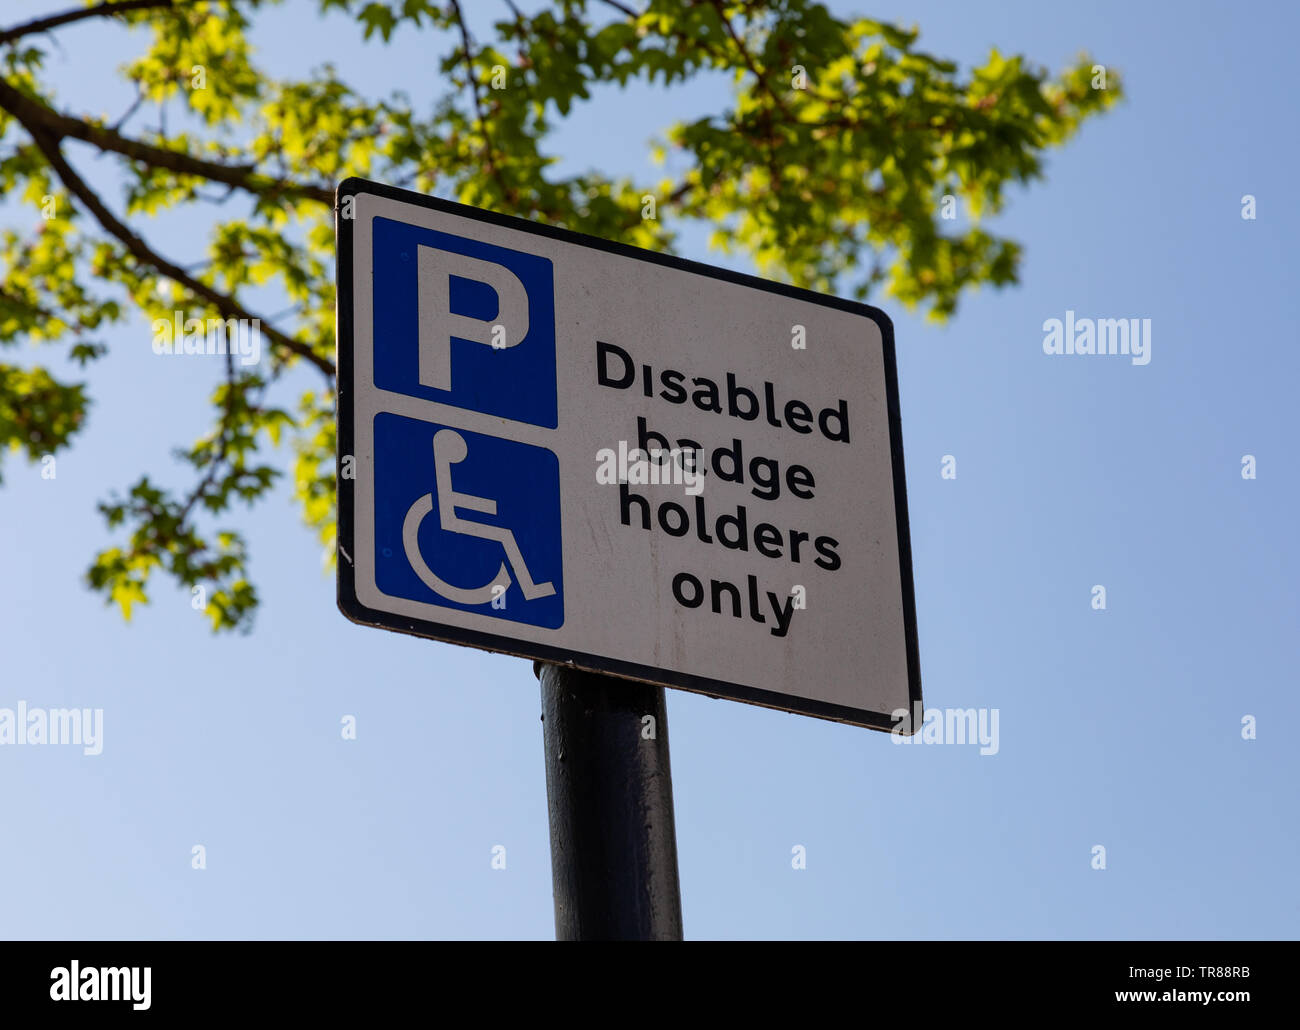 Close up of street sign with logos indicating parking for disabled badge holders only Widnes April 2019 Stock Photo